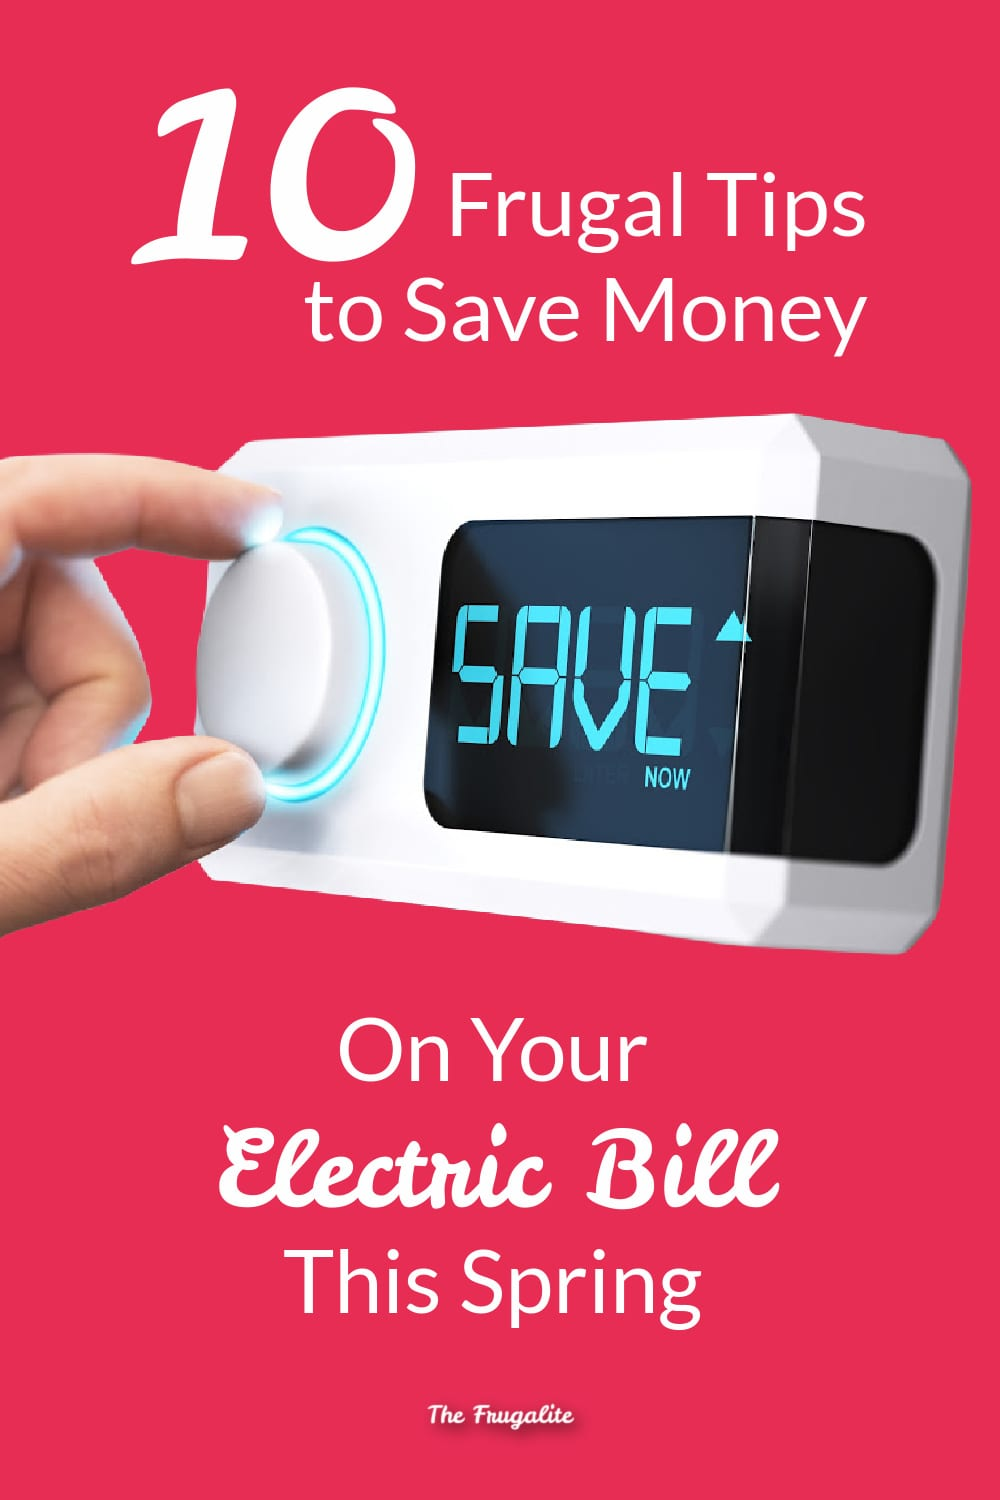 10 Frugal Tips to Save Money on Your Electric Bill This Spring